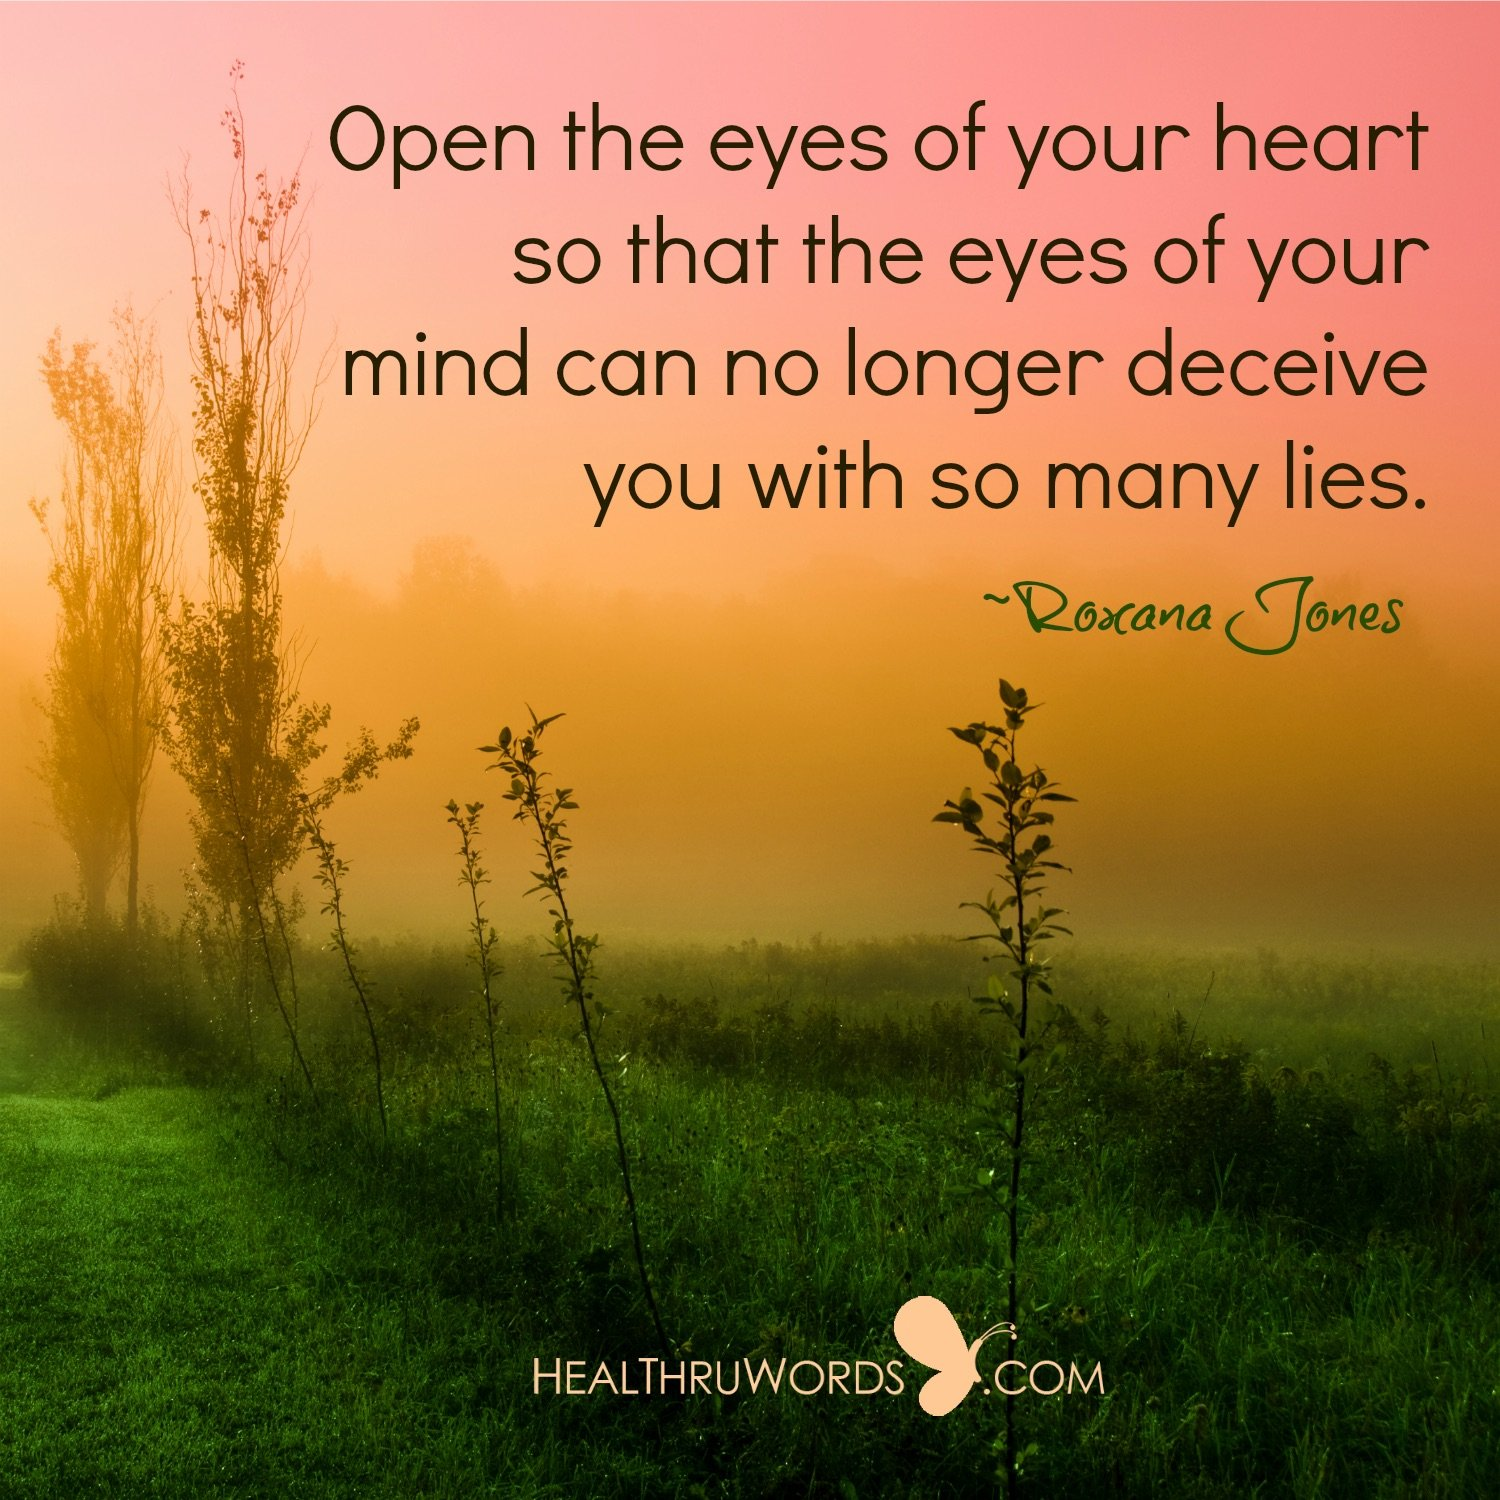 Inspirational Image: The Heart that Sees